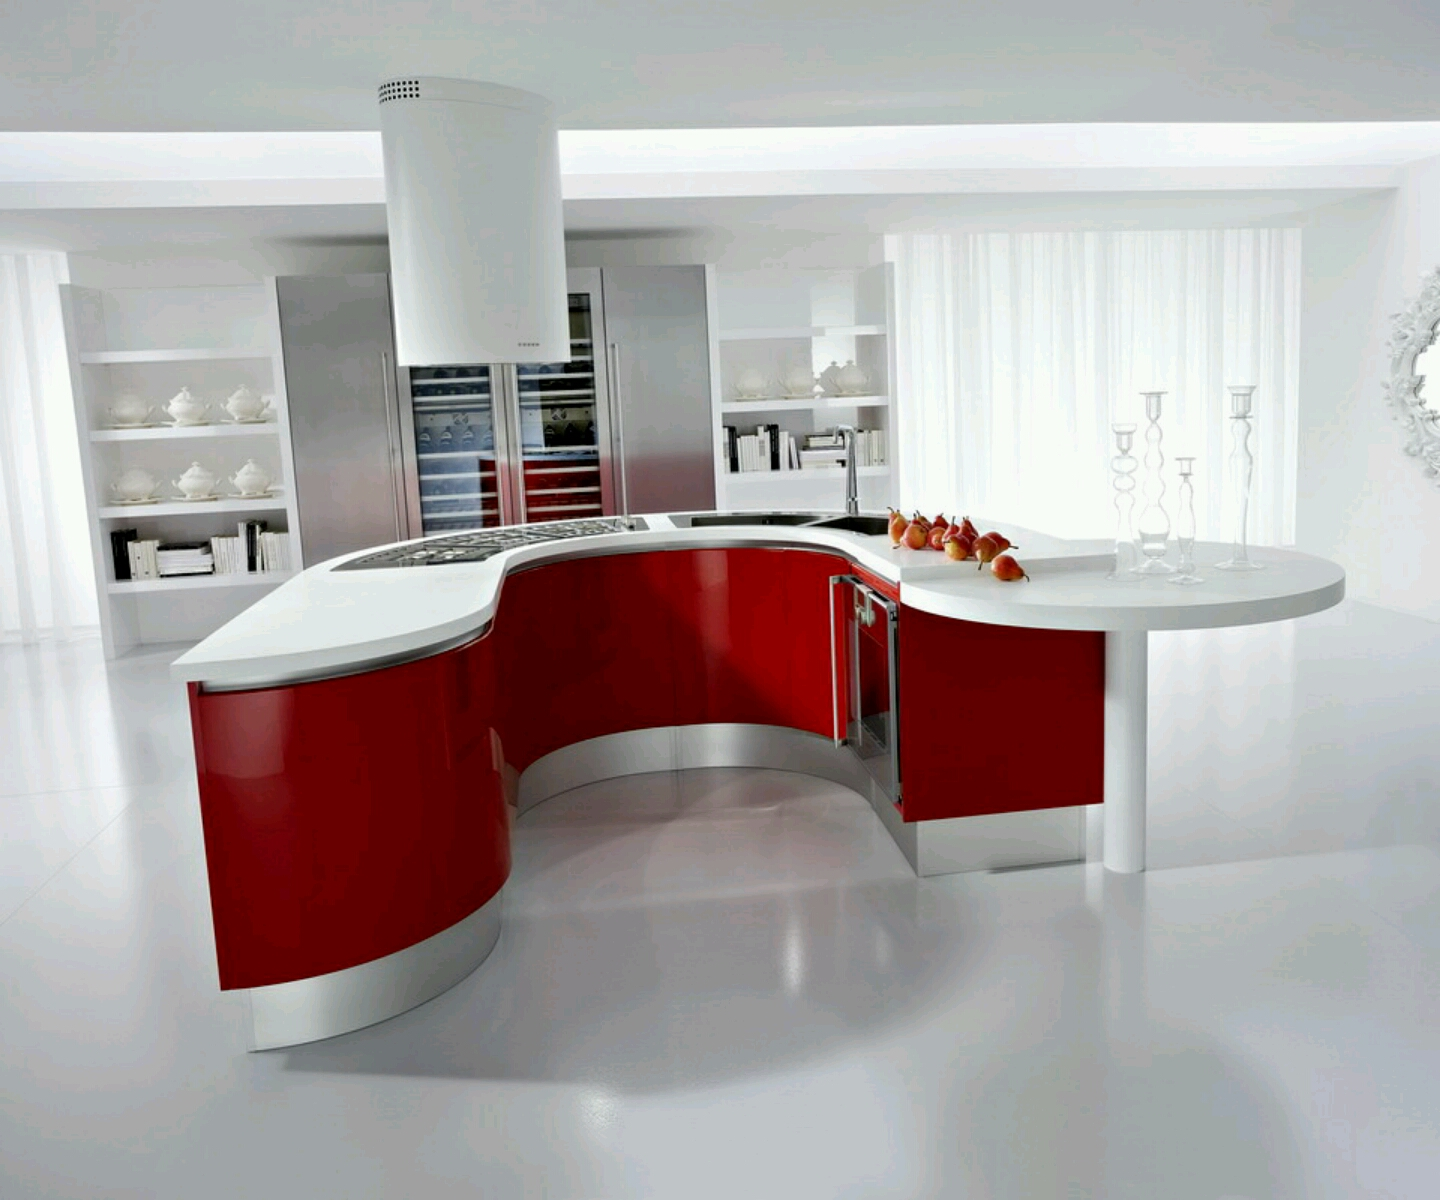 contemporary kitchen design draining board modern cabinets designs ideas furniture gallery